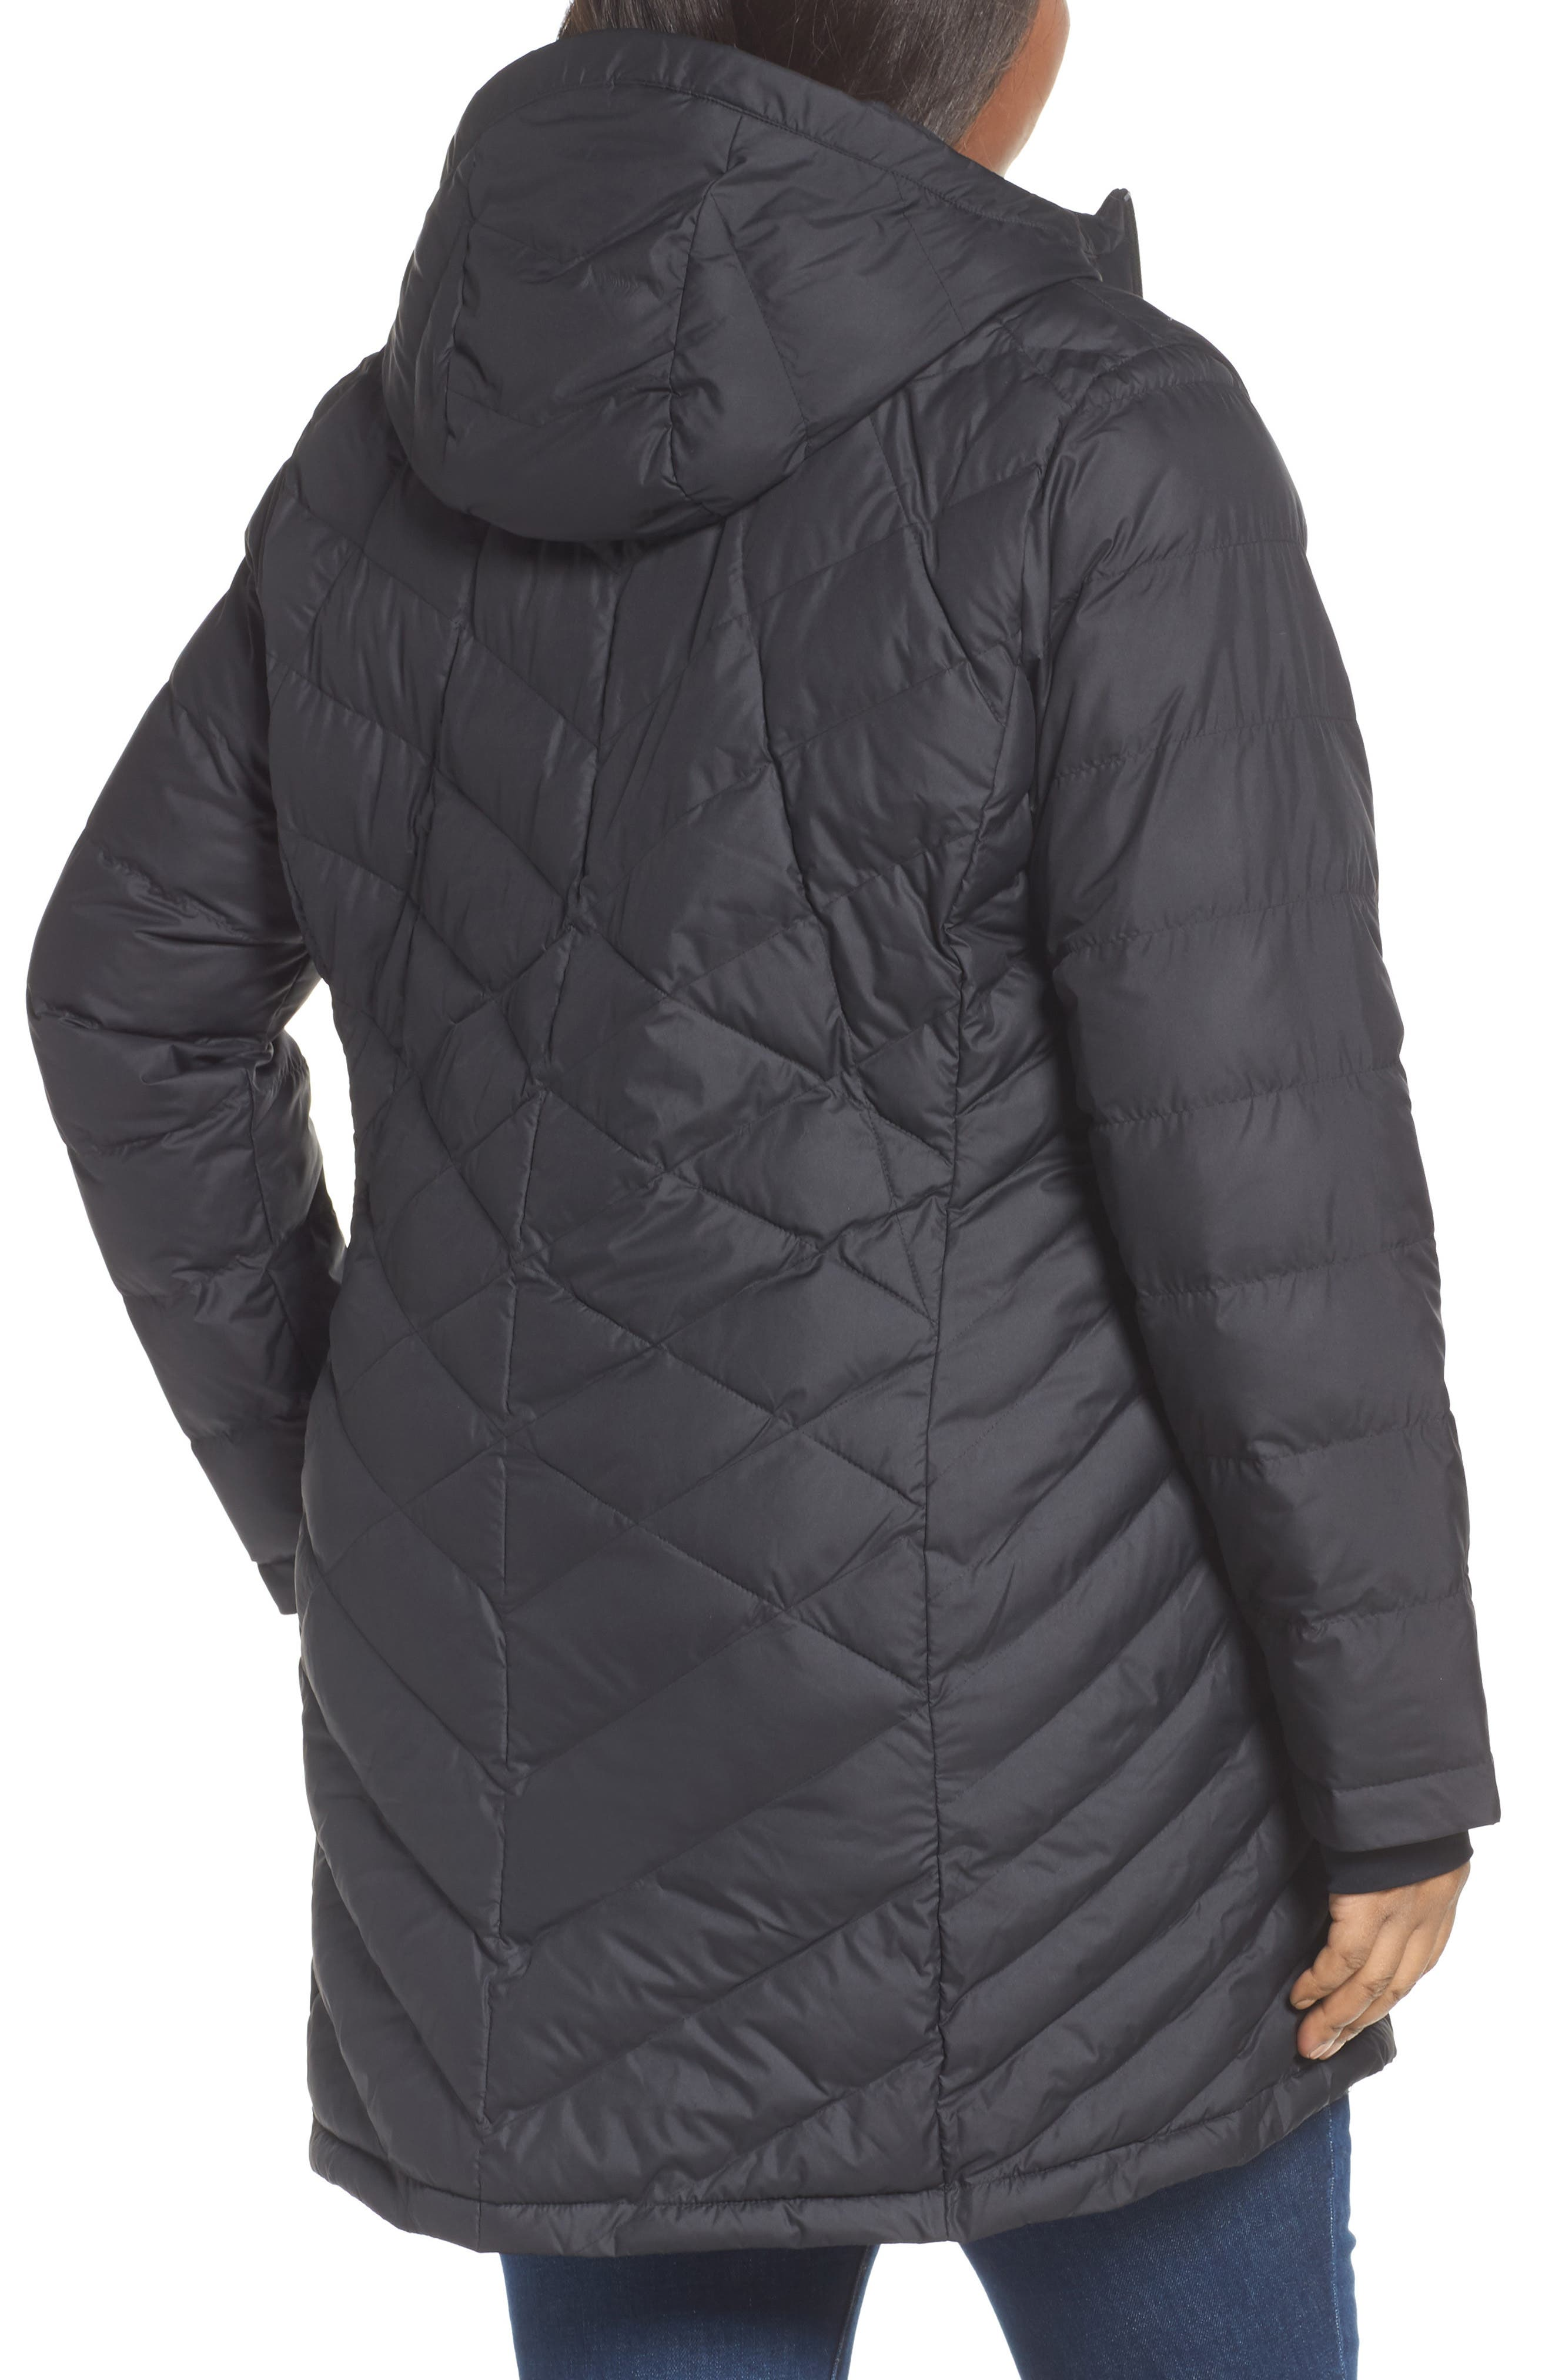 Heavenly Water Resistant Insulated Long Hooded Jacket,                             Alternate thumbnail 2, color,                             010